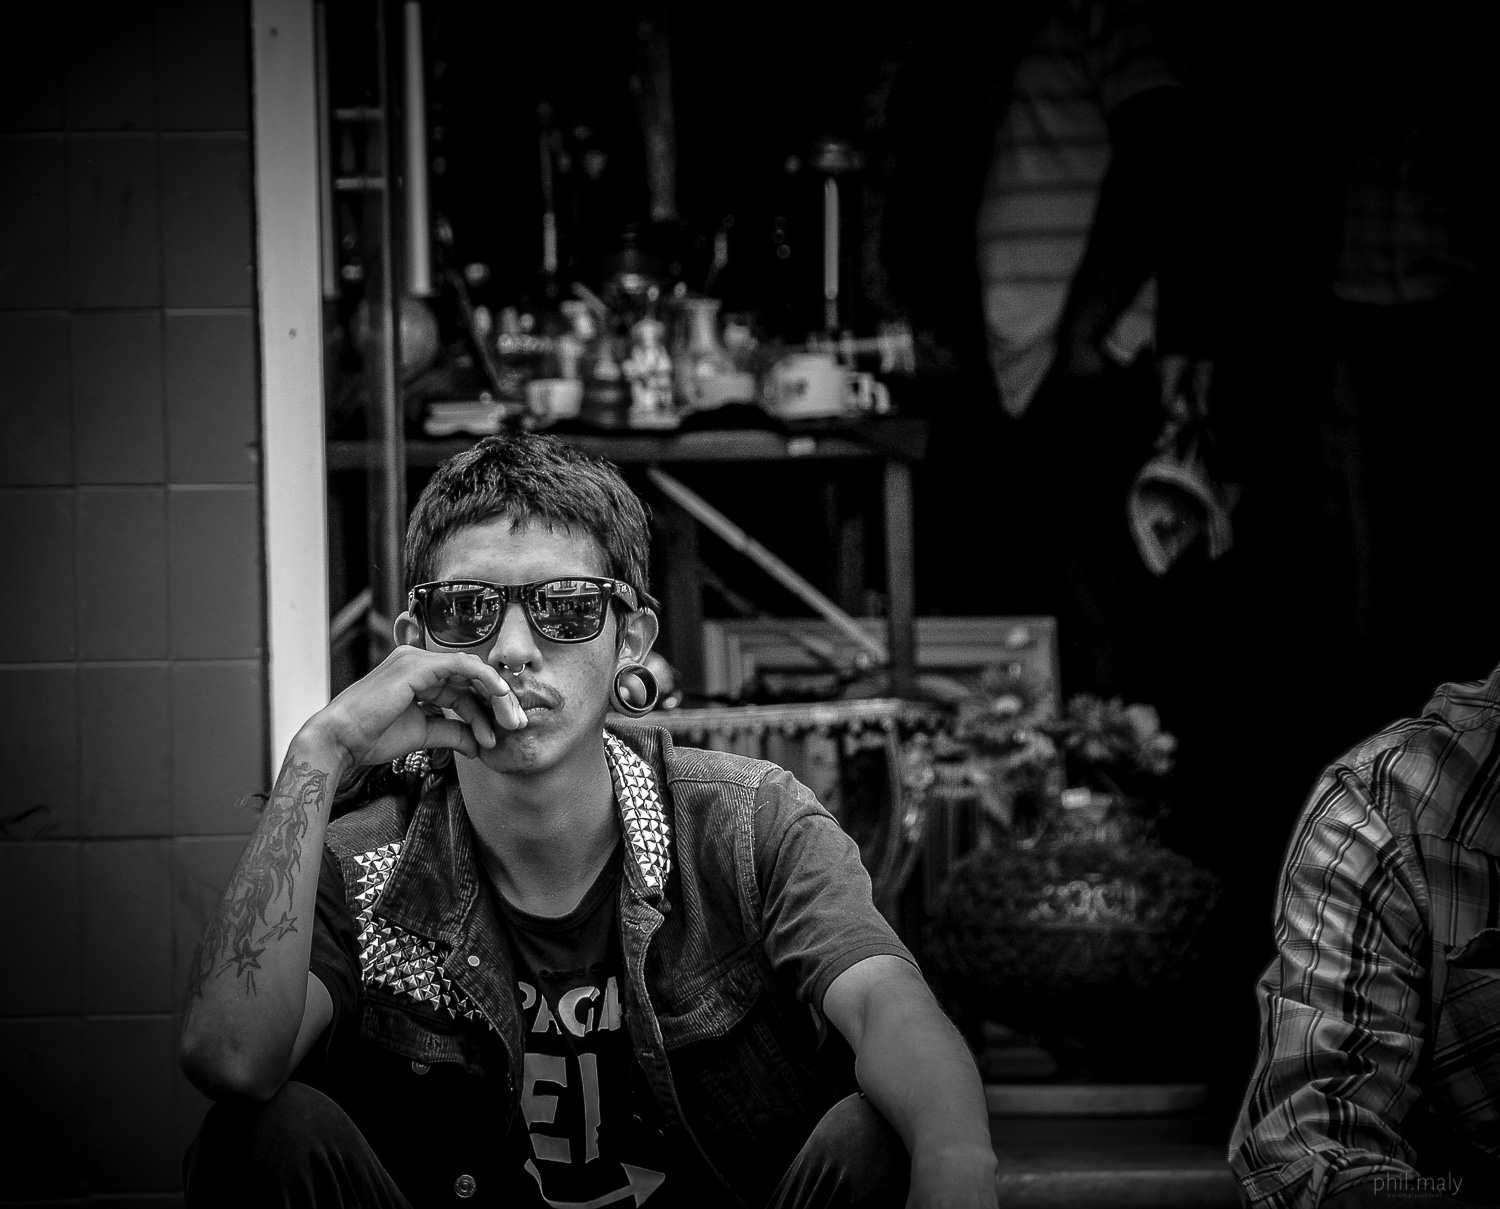 Street portrait of a punk rock young man with dark sunglasses and piercings